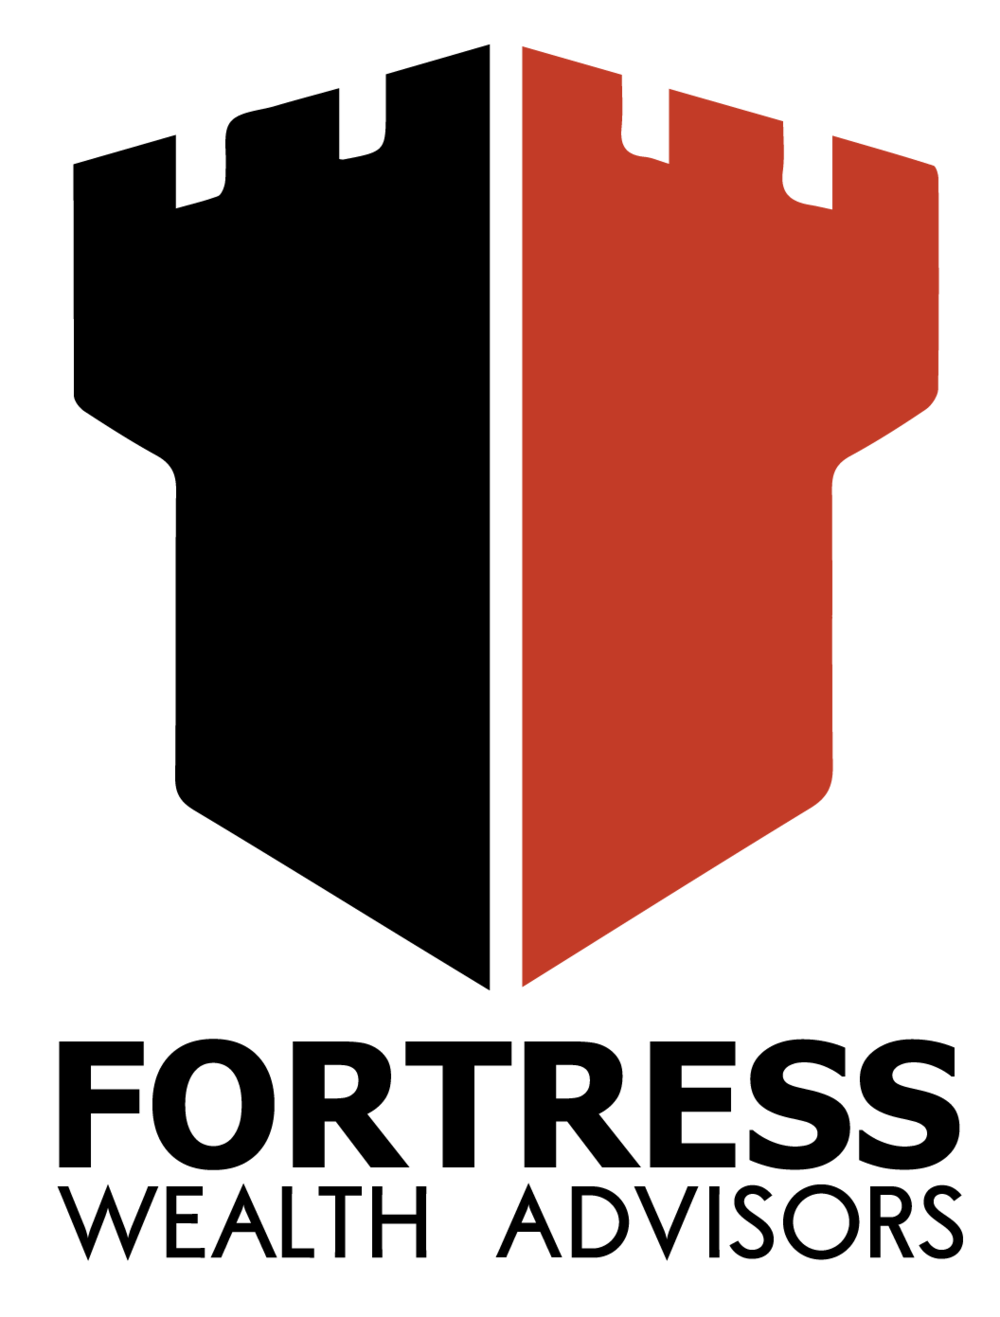 Fortress-Wealth-Advisors-Vertical-Black-Red.png